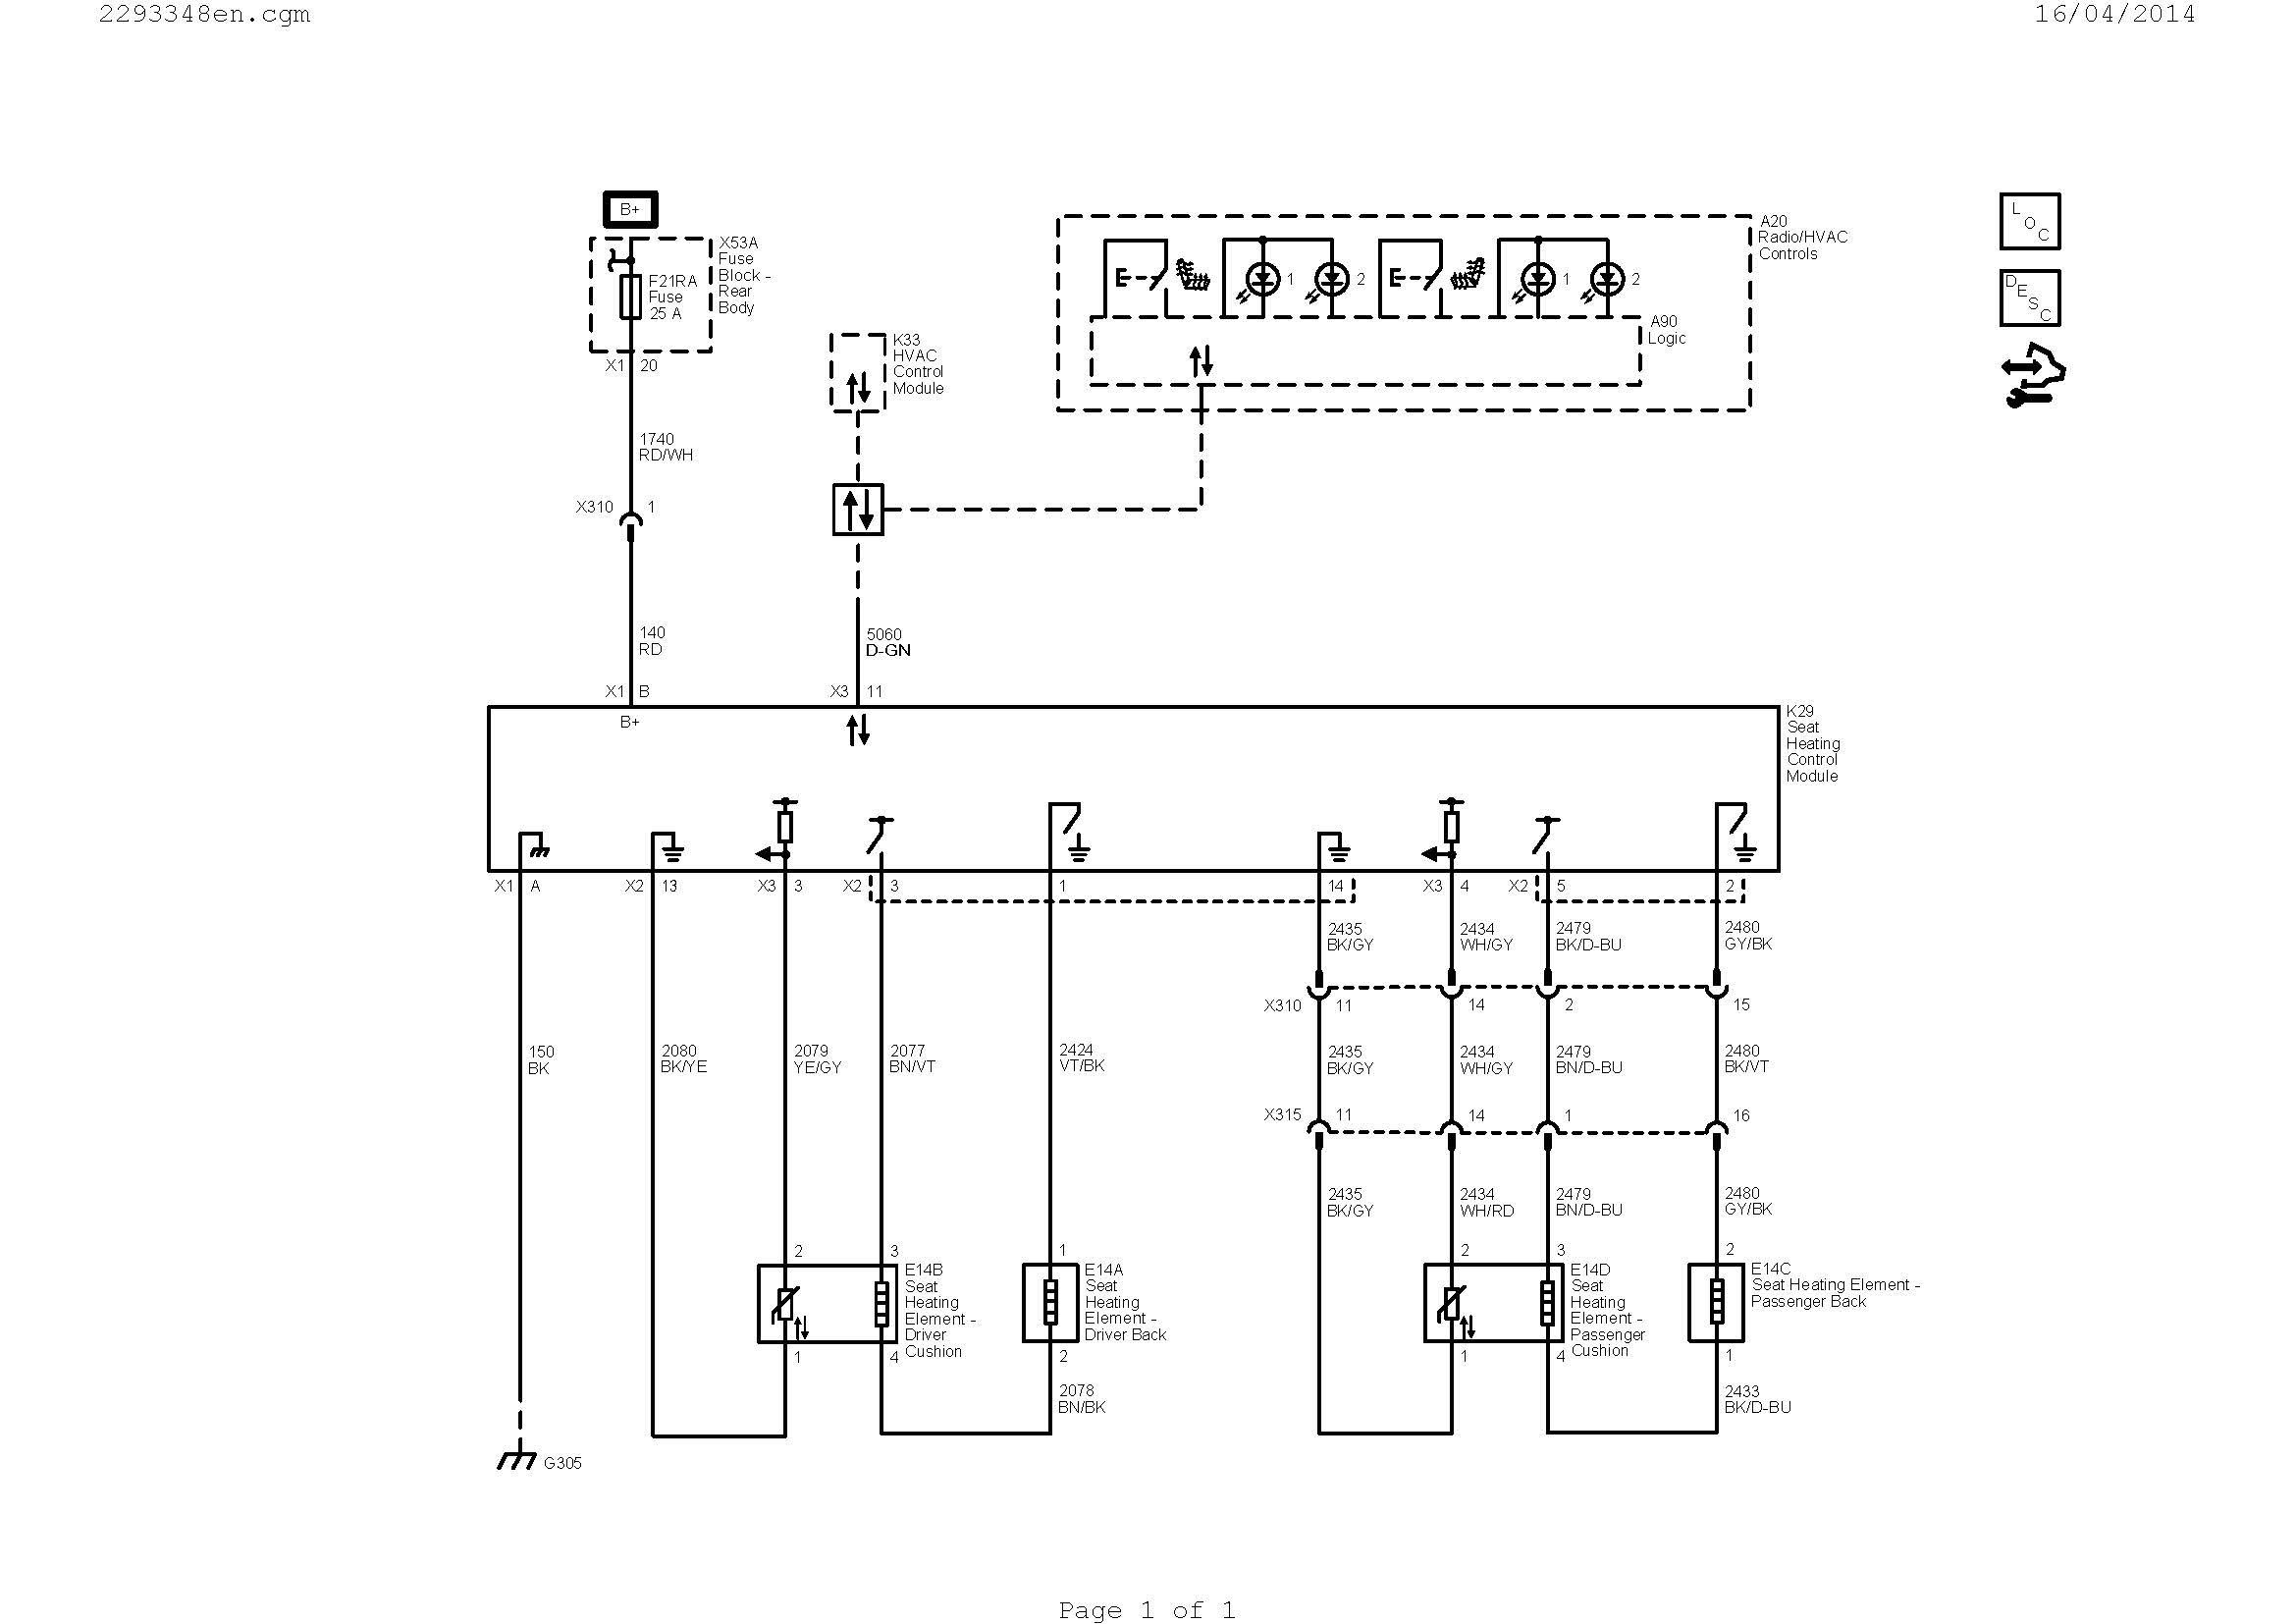 air conditioner wiring diagram picture Download-Wiring Diagram Schematic New Wiring Diagram Guitar Fresh Hvac Diagram Best Hvac Diagram 0d 14-a